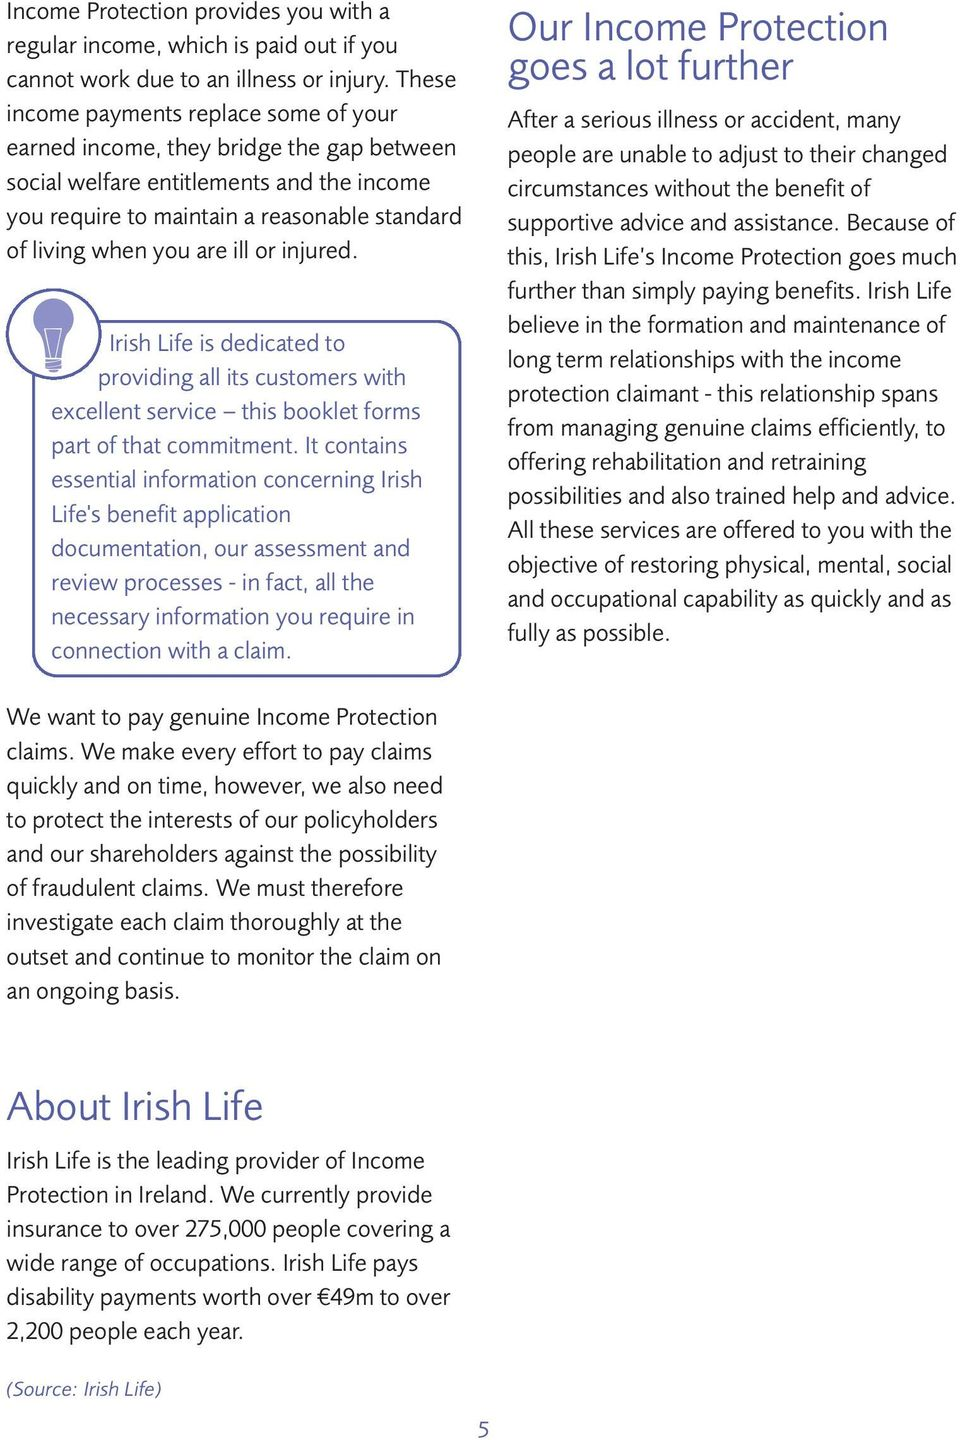 ill or injured. Irish Life is dedicated to providing all its customers with excellent service this booklet forms part of that commitment.